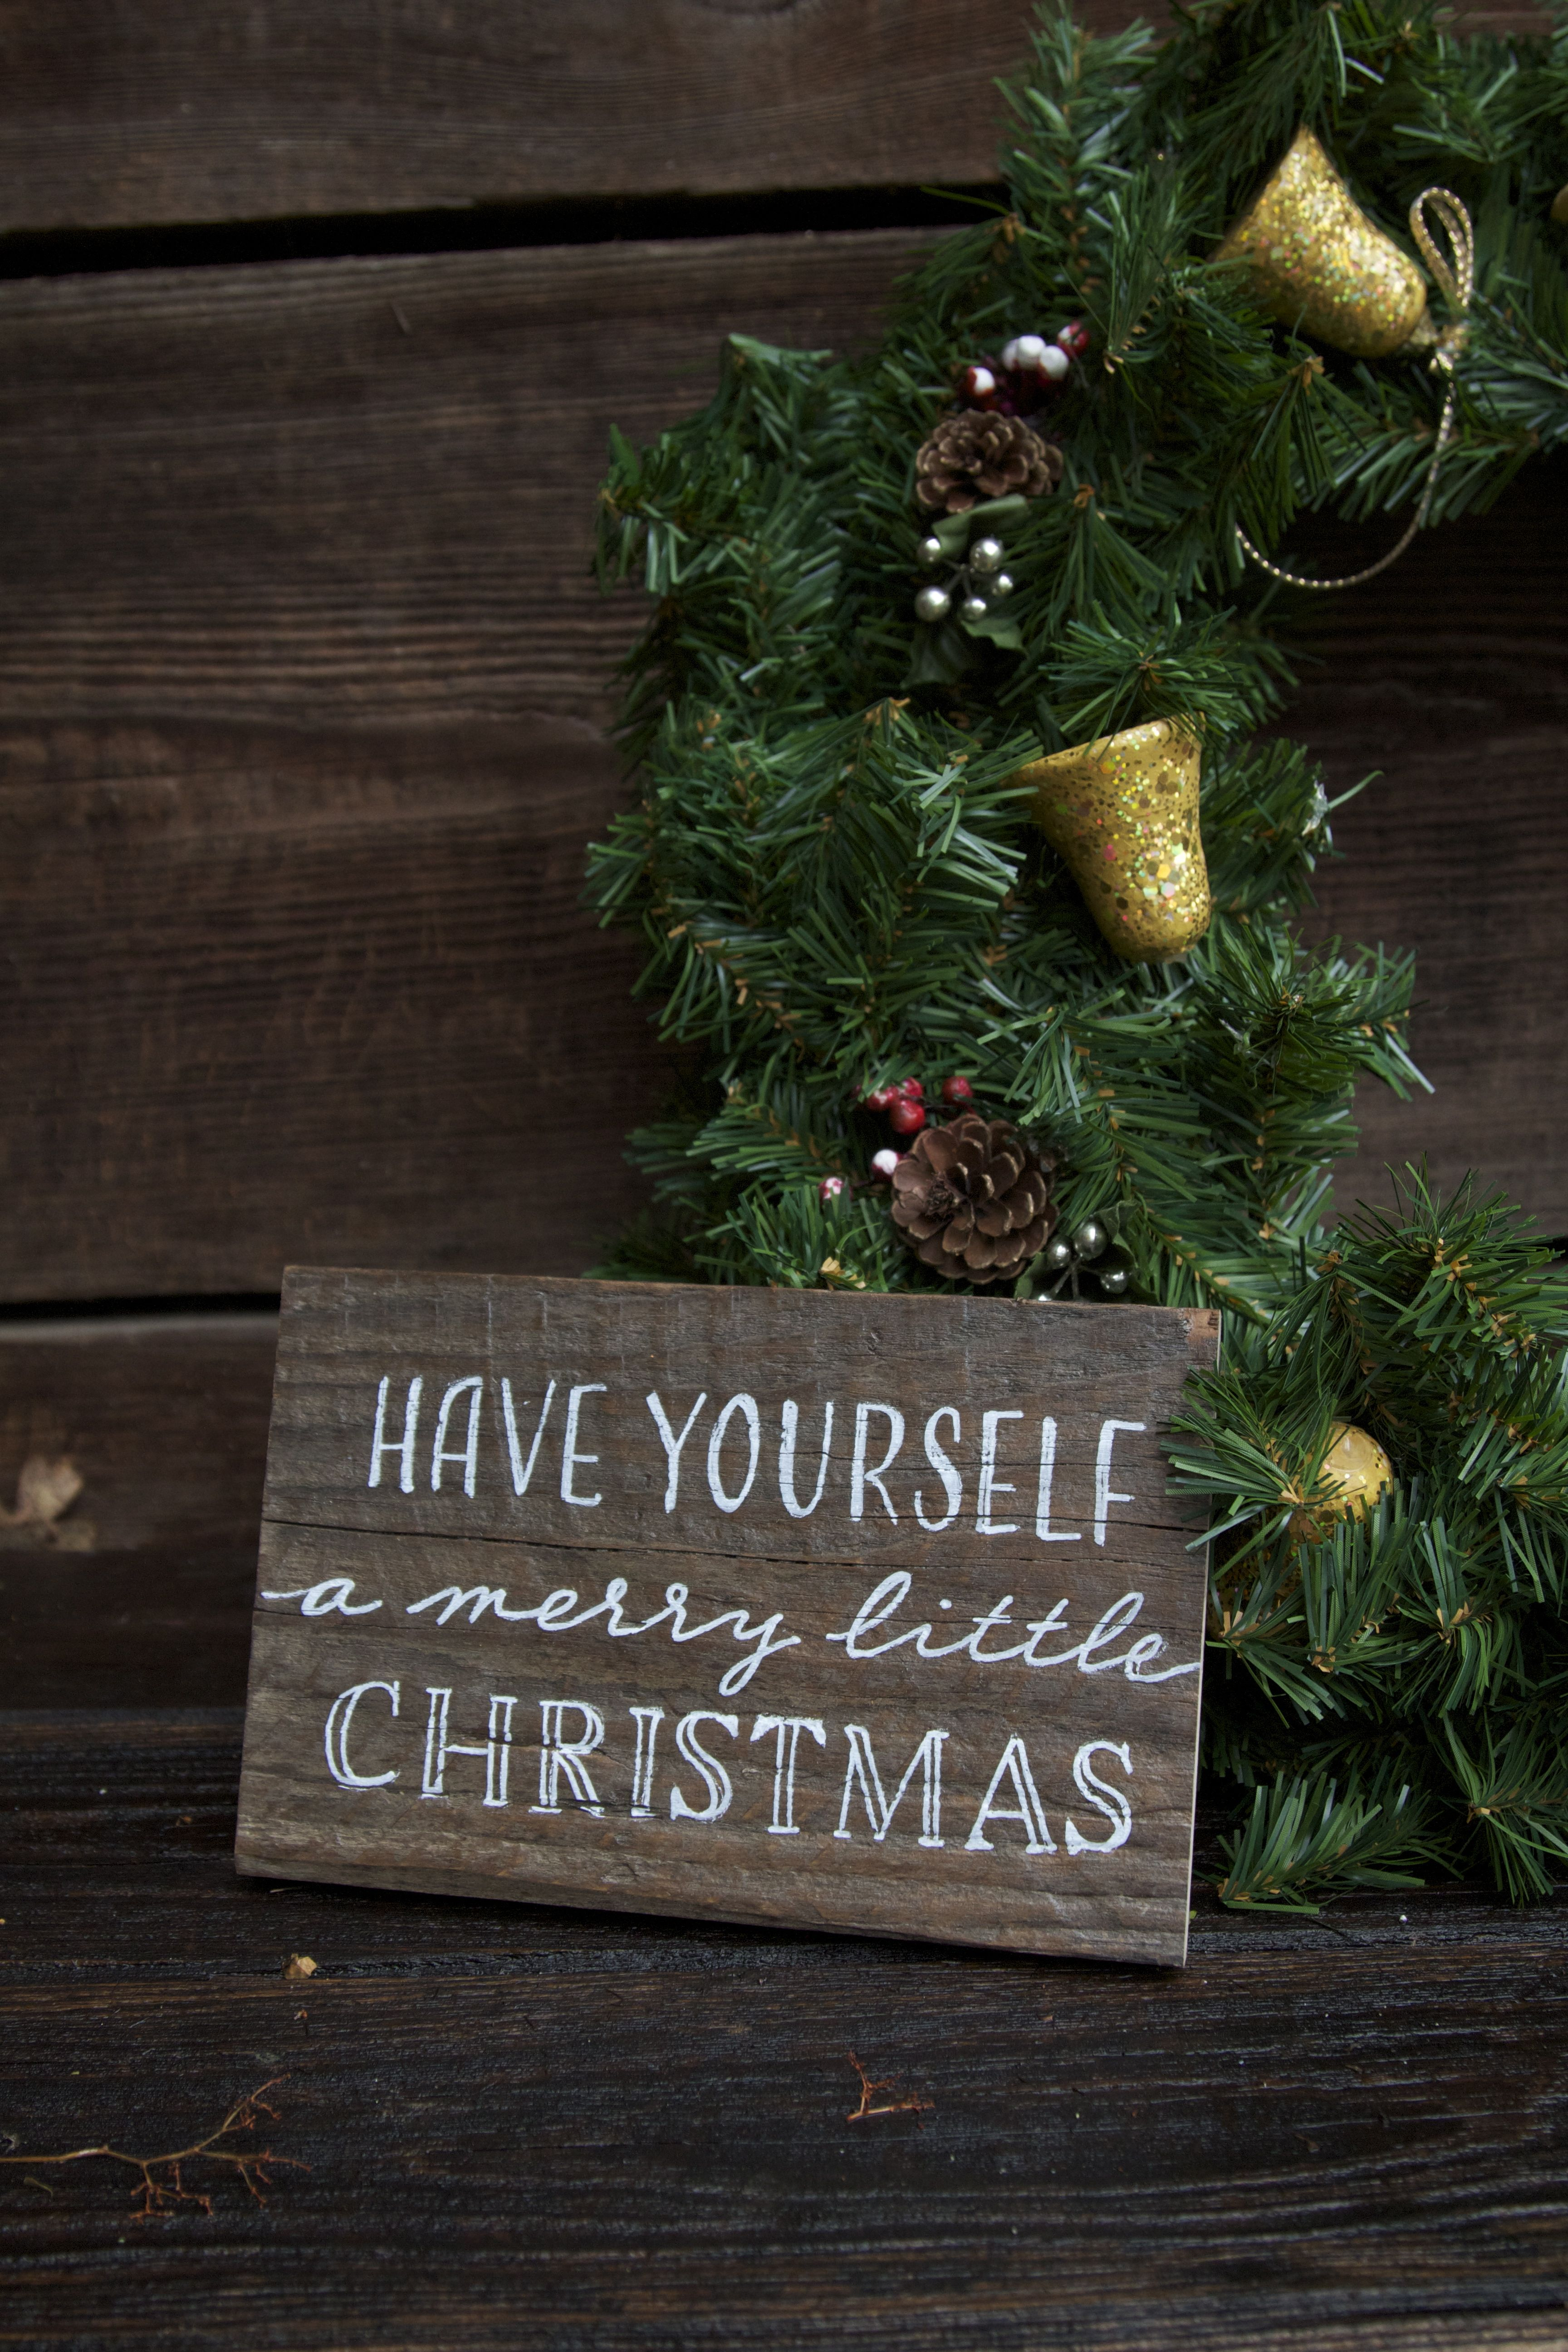 Have yourself a merry little Christmas reclaimed wood Holiday sign. Custom hand painted.